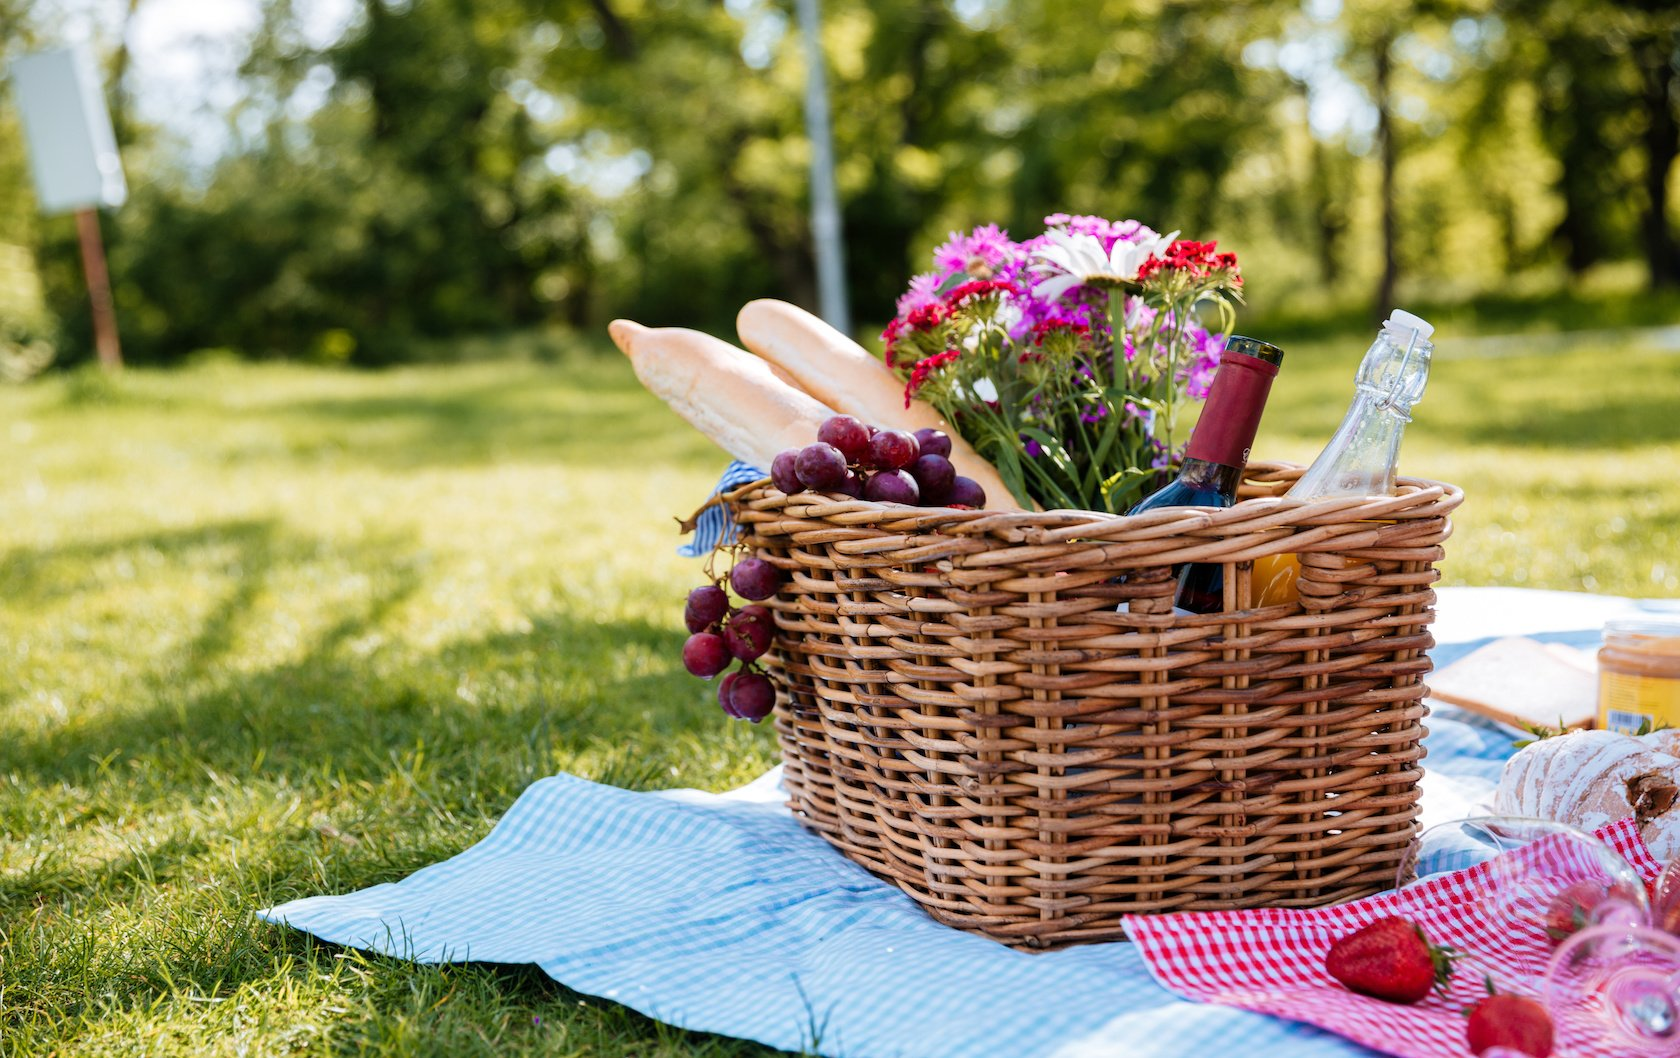 The Best Places to Picnic in London